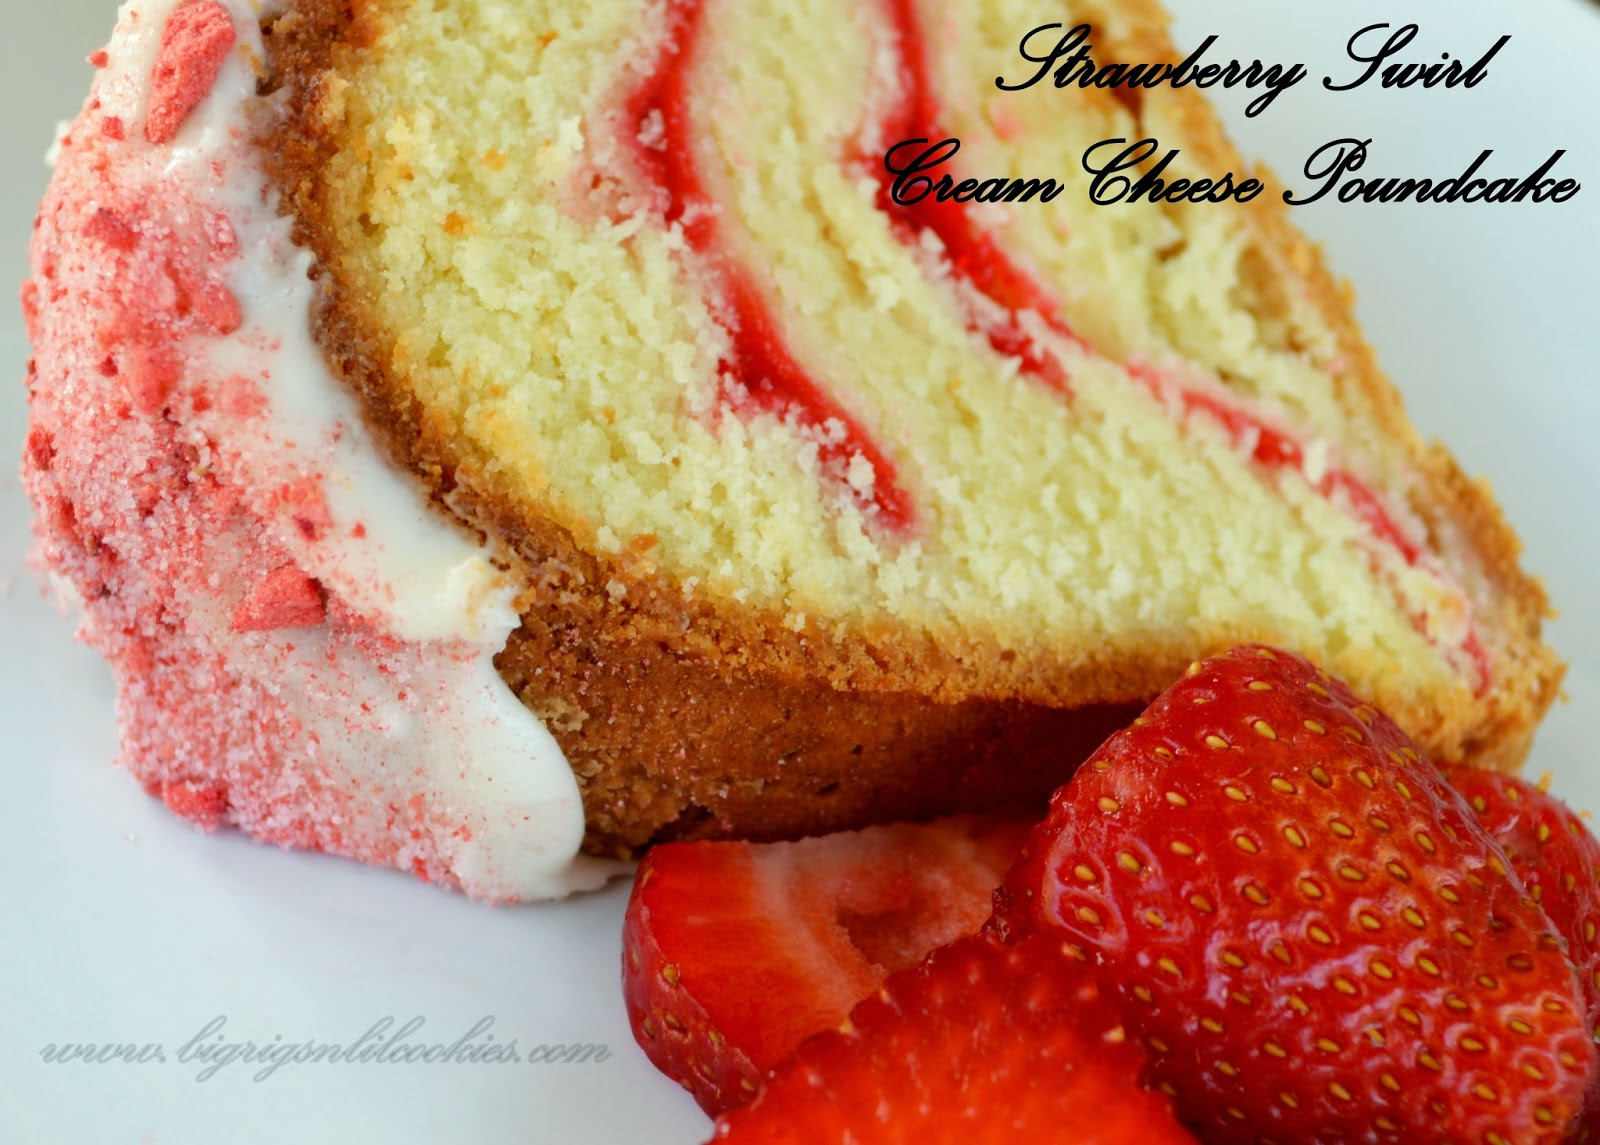 Bundt cake recipes made with cream cheese